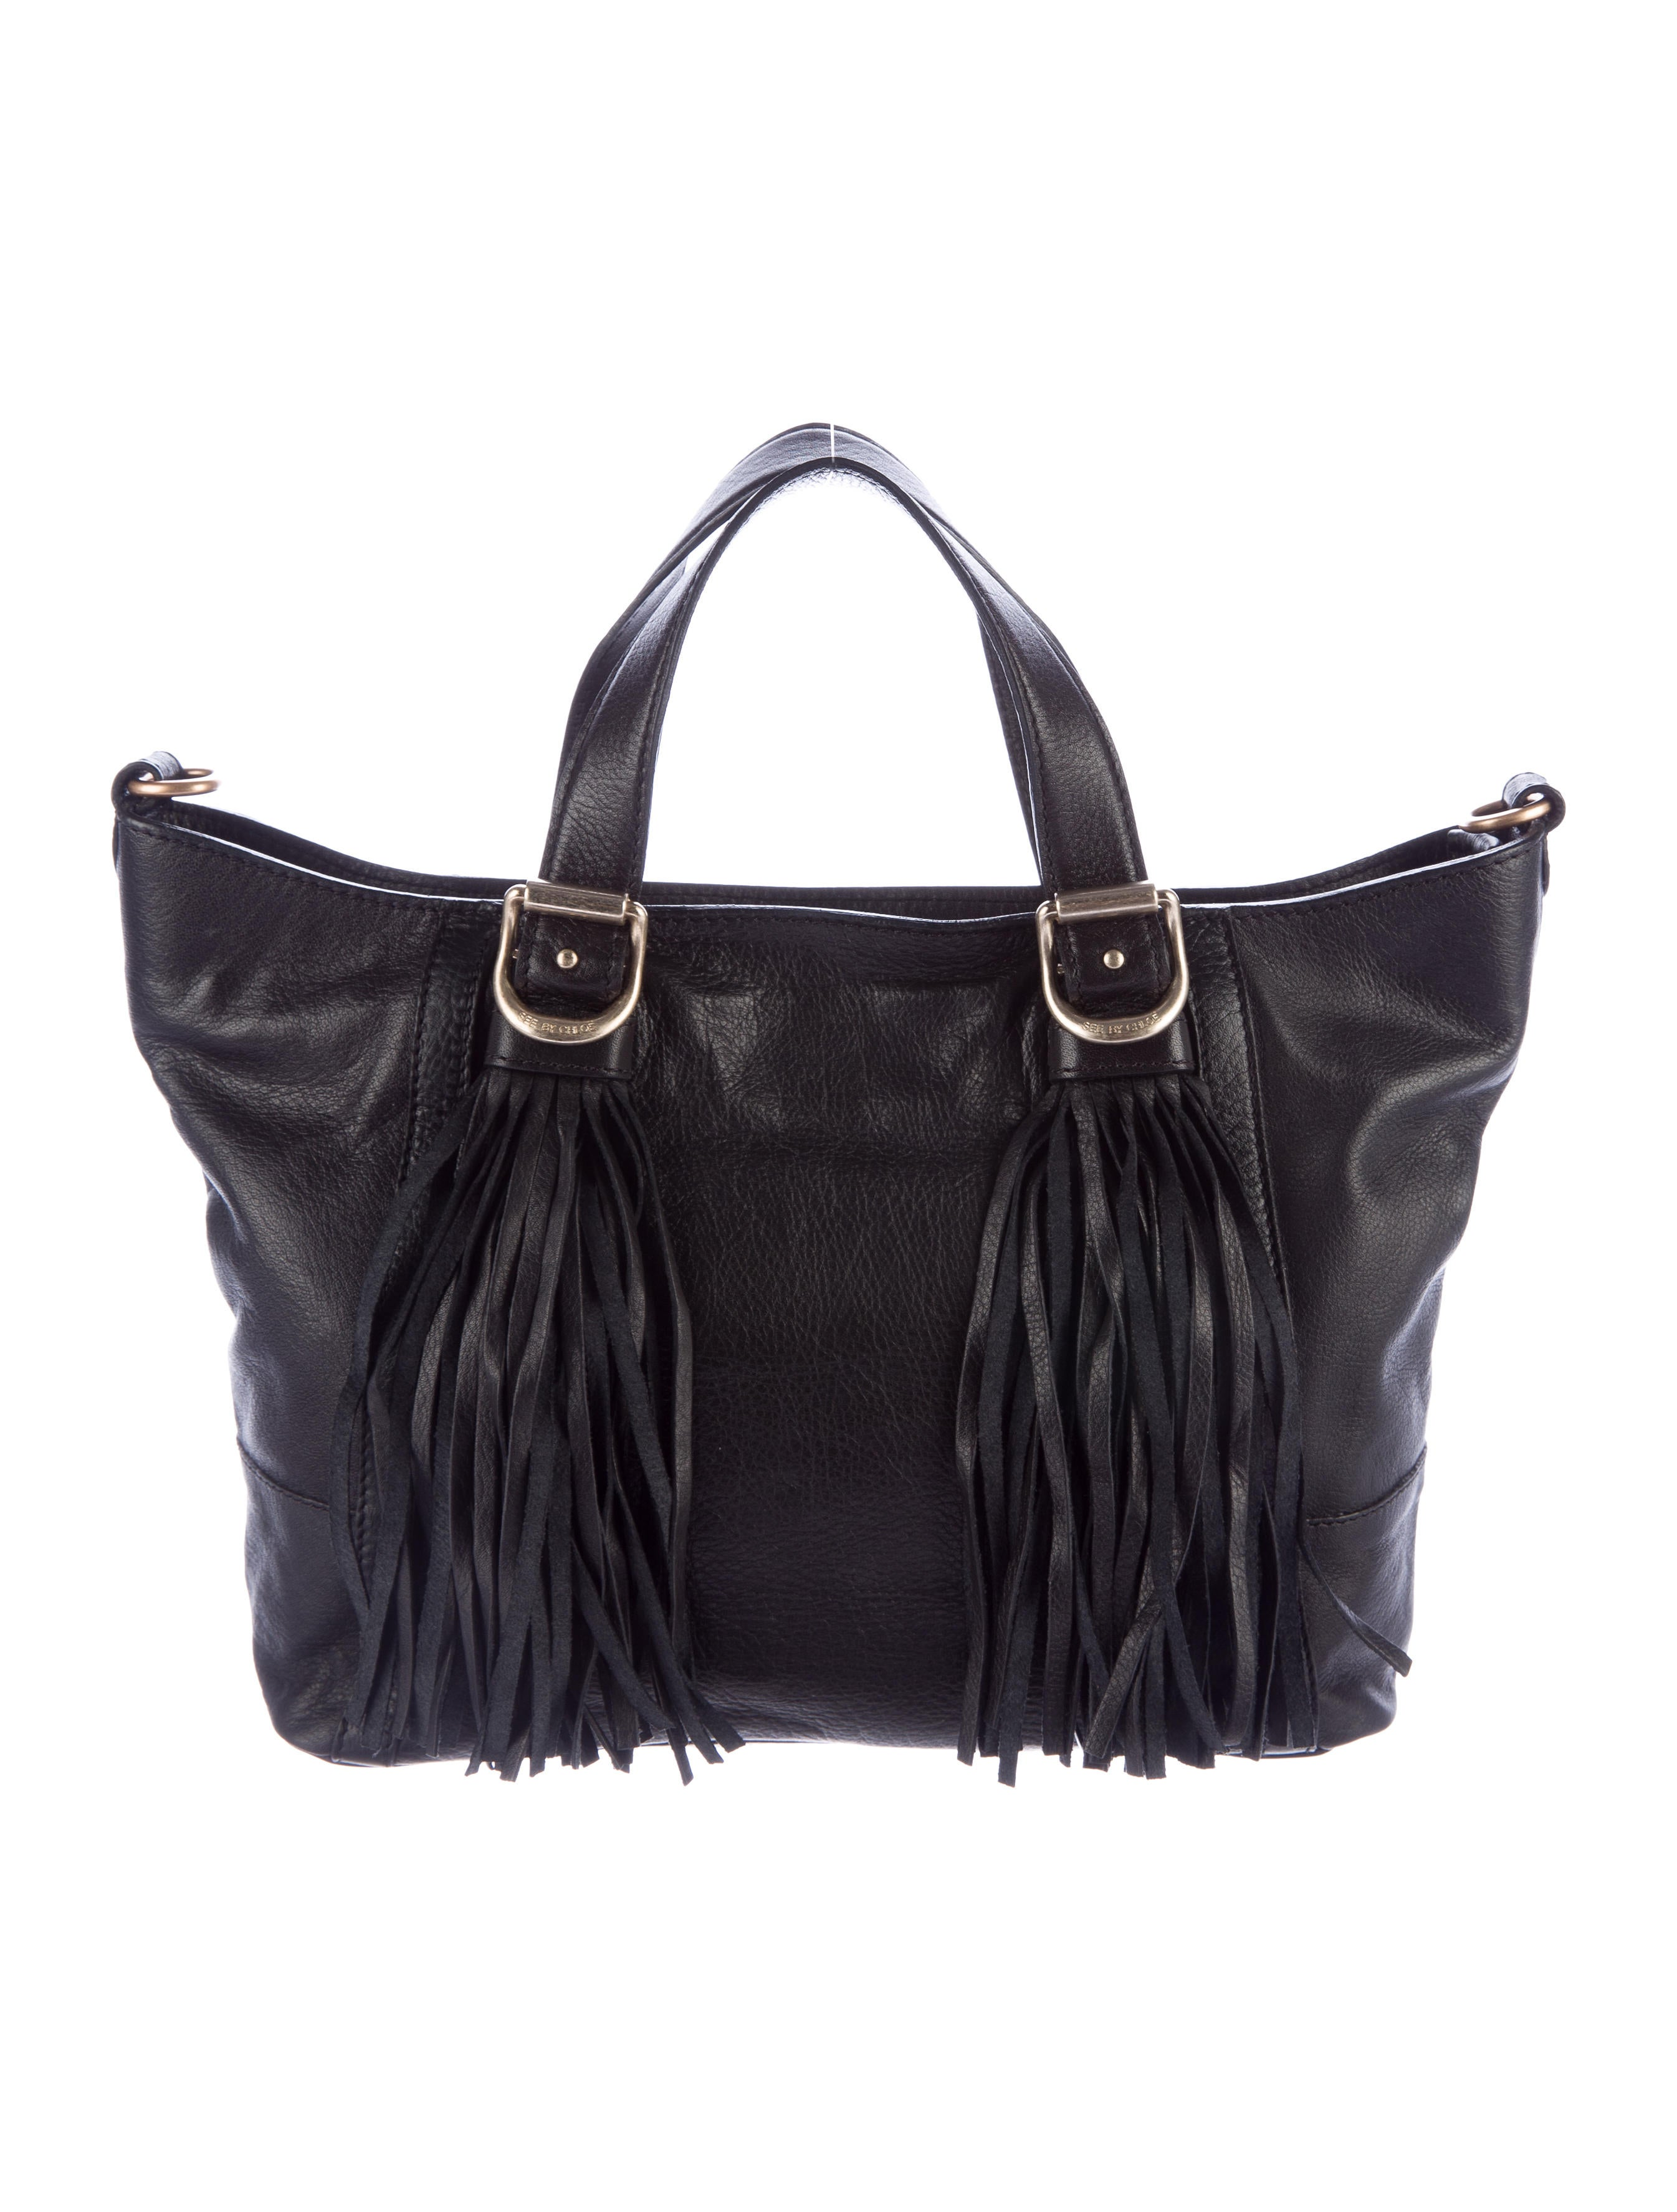 Shop Leather Fringe Handbags at eBags - experts in bags and accessories since We offer easy returns, expert advice, and millions of customer reviews.